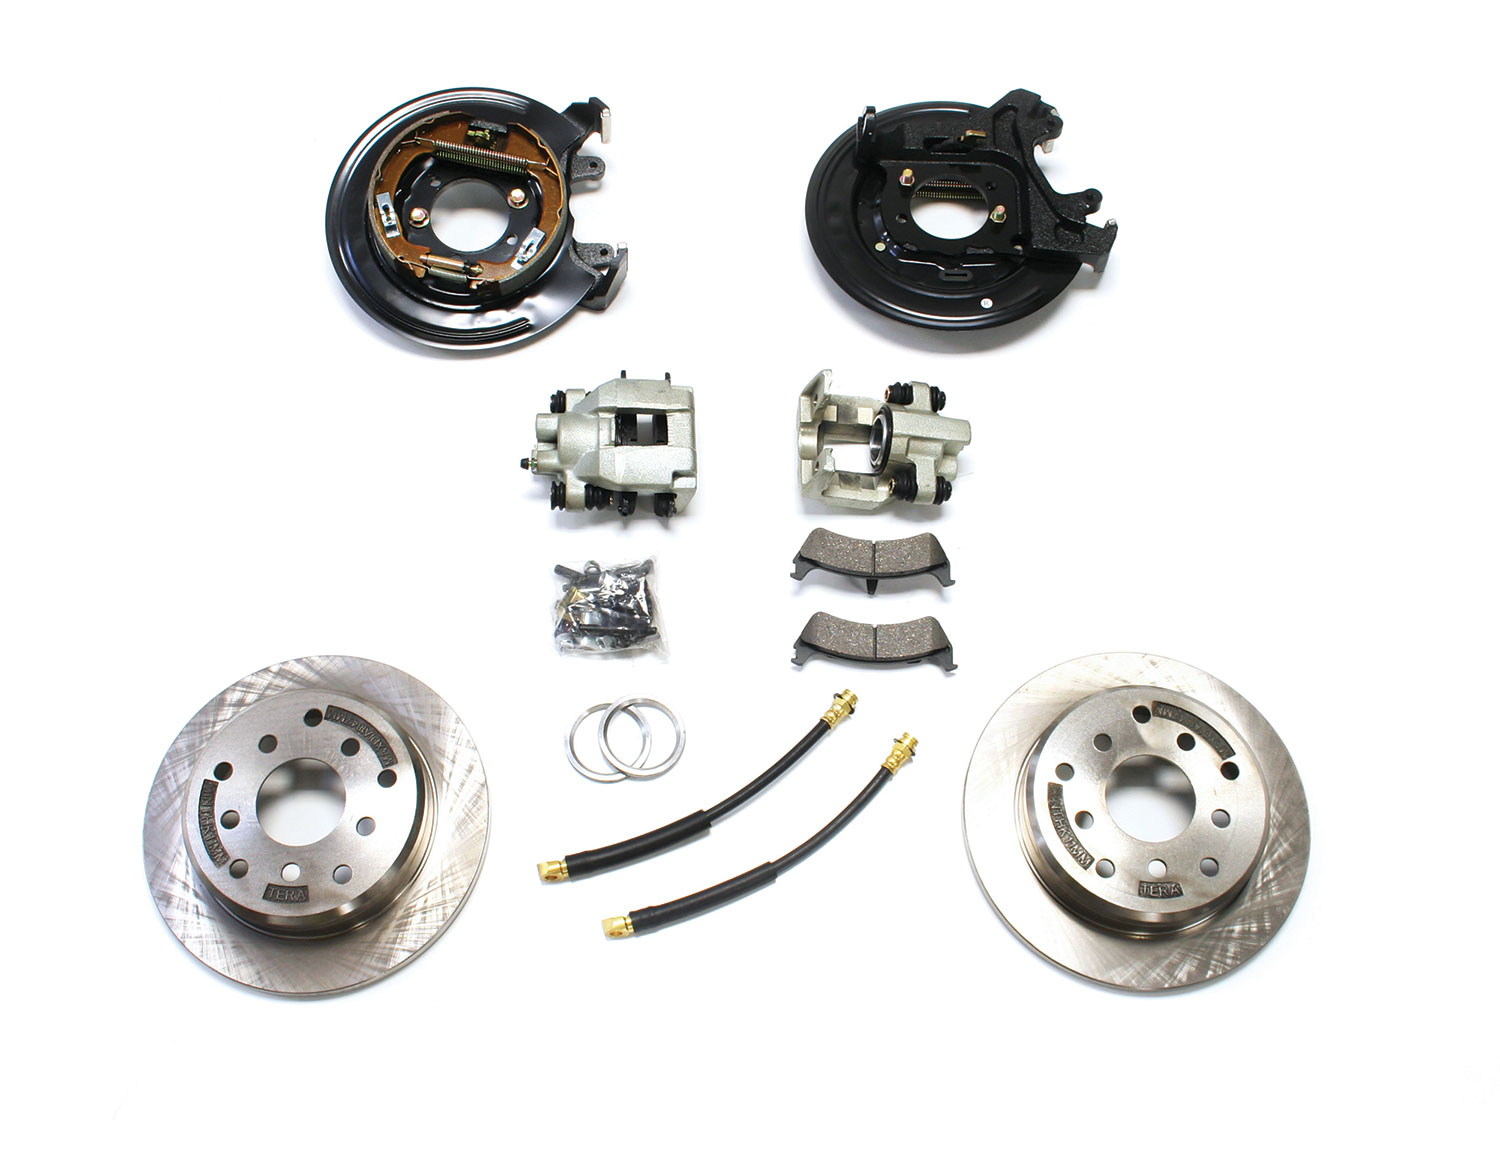 Teraflex Rear Disc Brake Conversion Kit - TJ/LJ